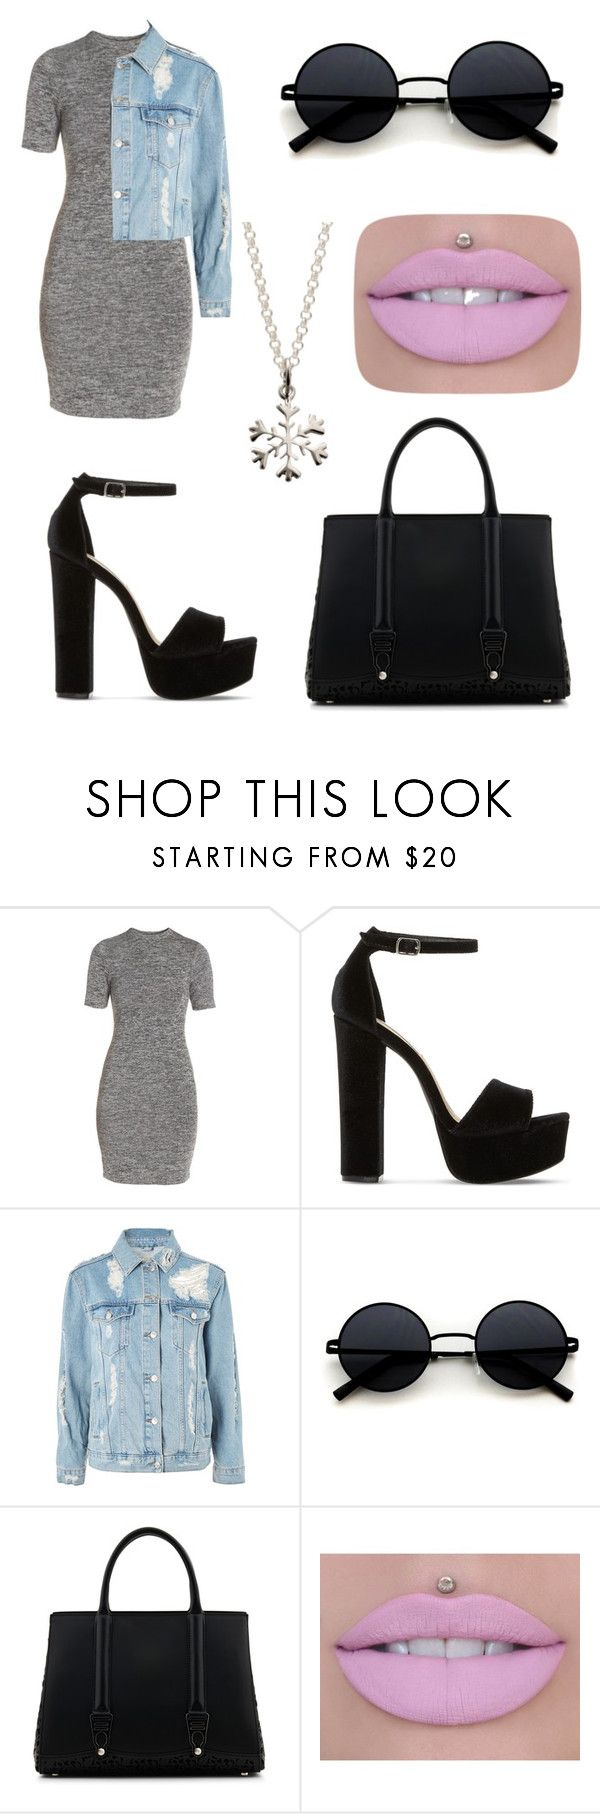 """Untitled #51"" by volkovanasty ❤ liked on Polyvore featuring French Connection, Steve Madden, Topshop, La Perla, Jeffree Star and Lily Charmed"